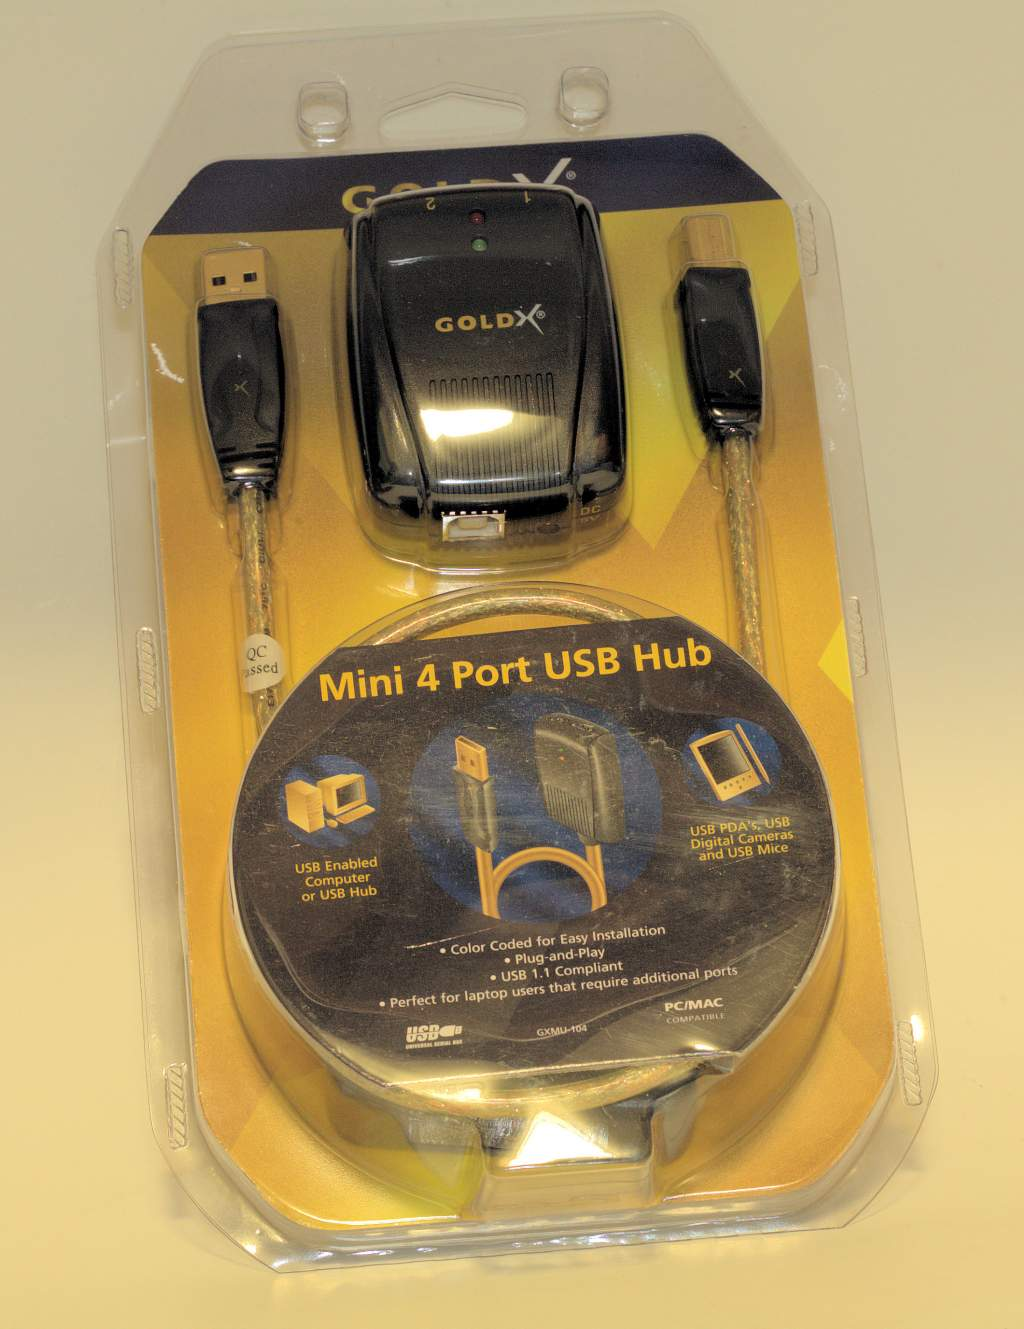 USB 1.1 4-PORT POWERED HUB